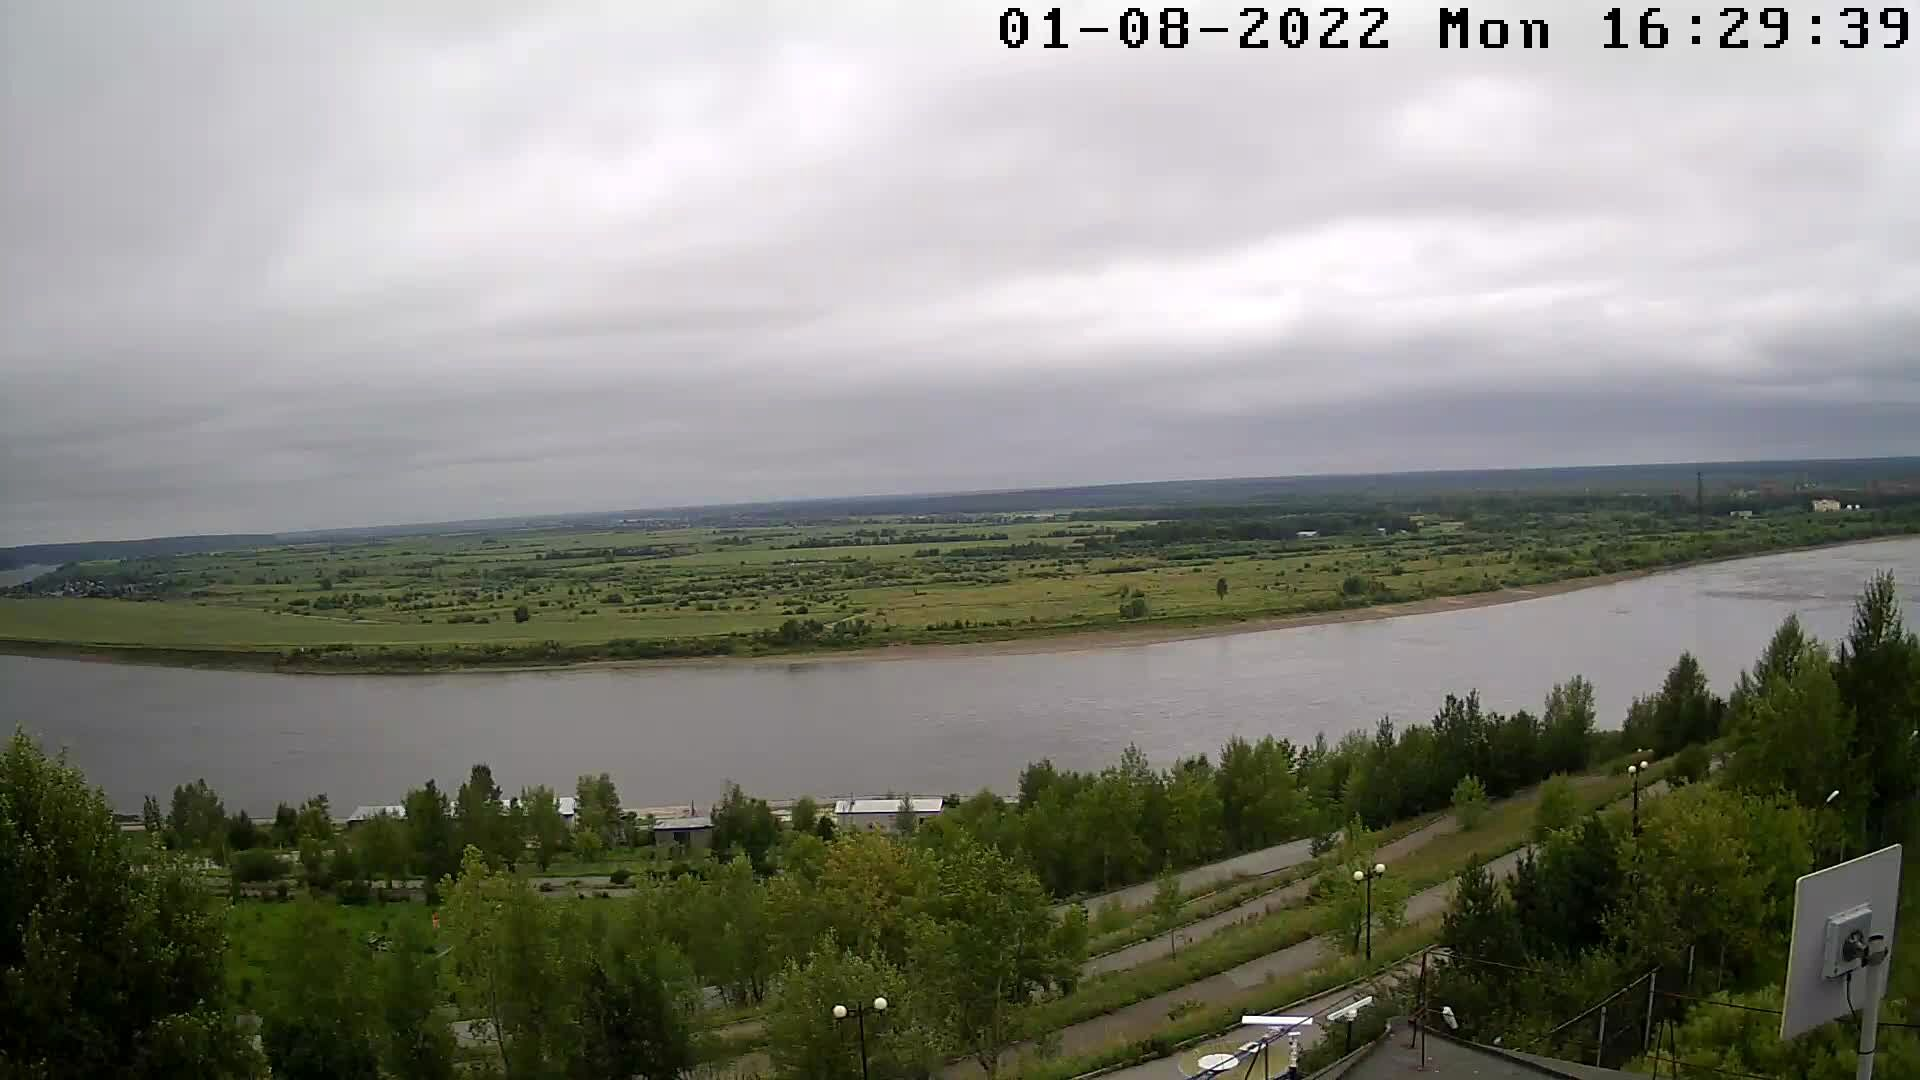 Webcam Translyaciya reki Tom, Tomsk, Russia